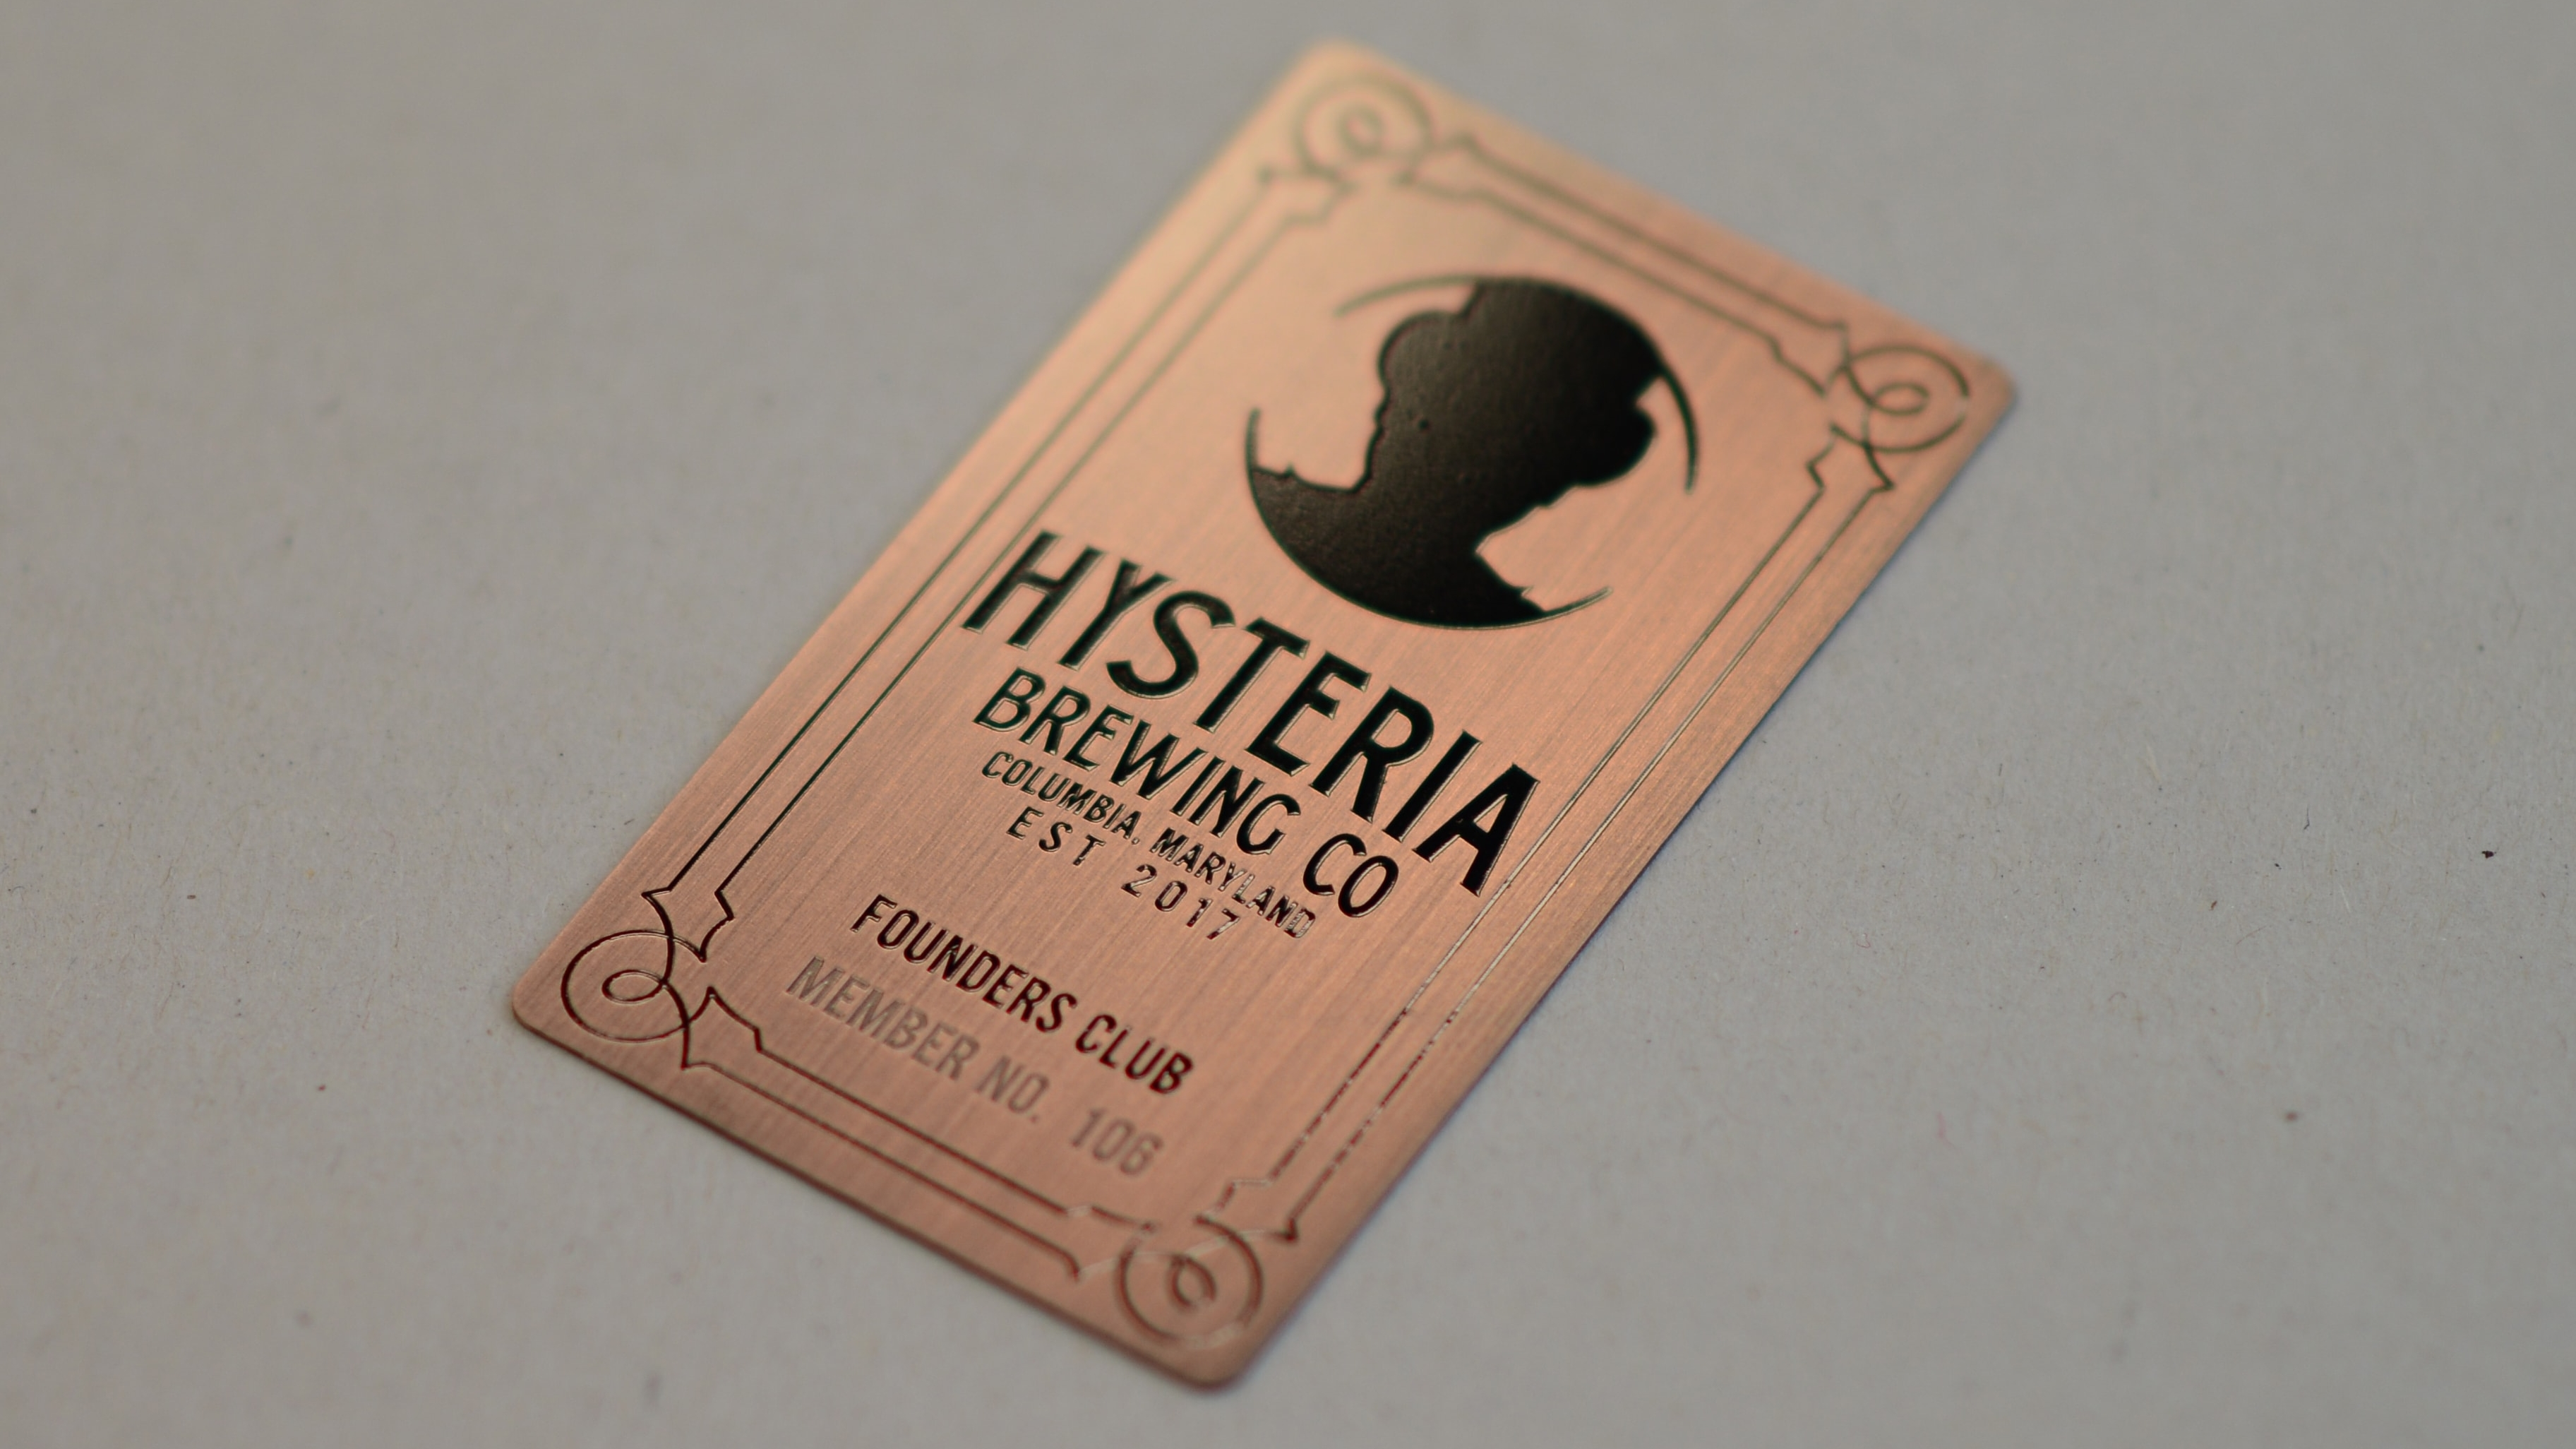 Brushed Antique Copper - Hysteria